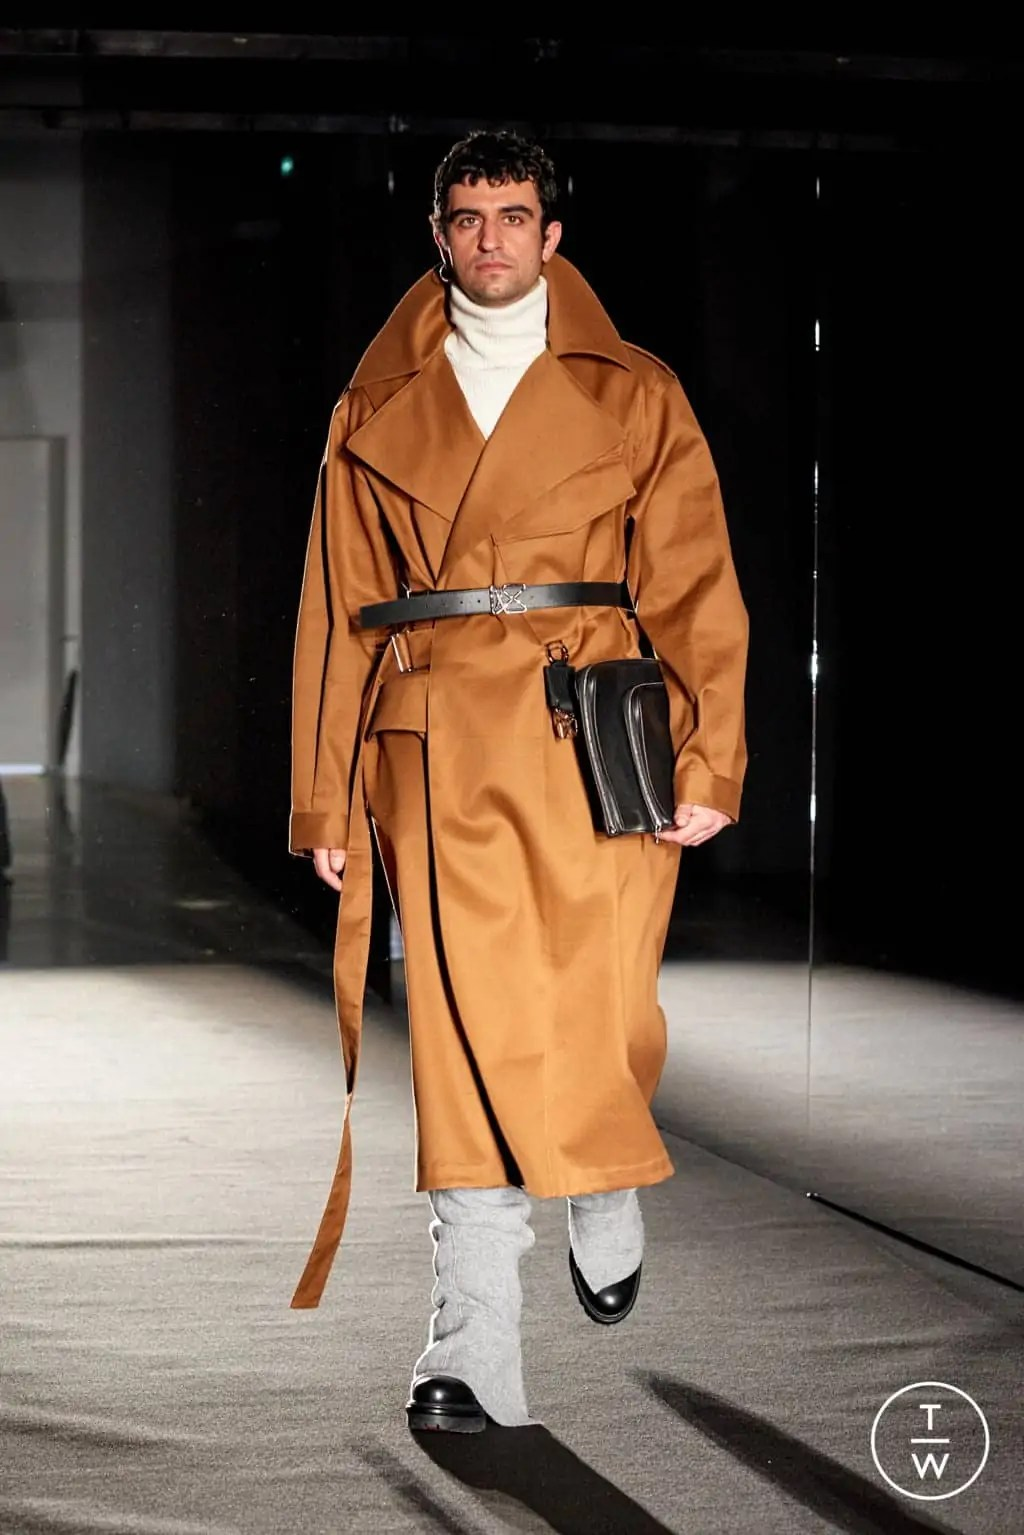 15 FALL/WINTER TRENDS FOR MEN IN 2021 507